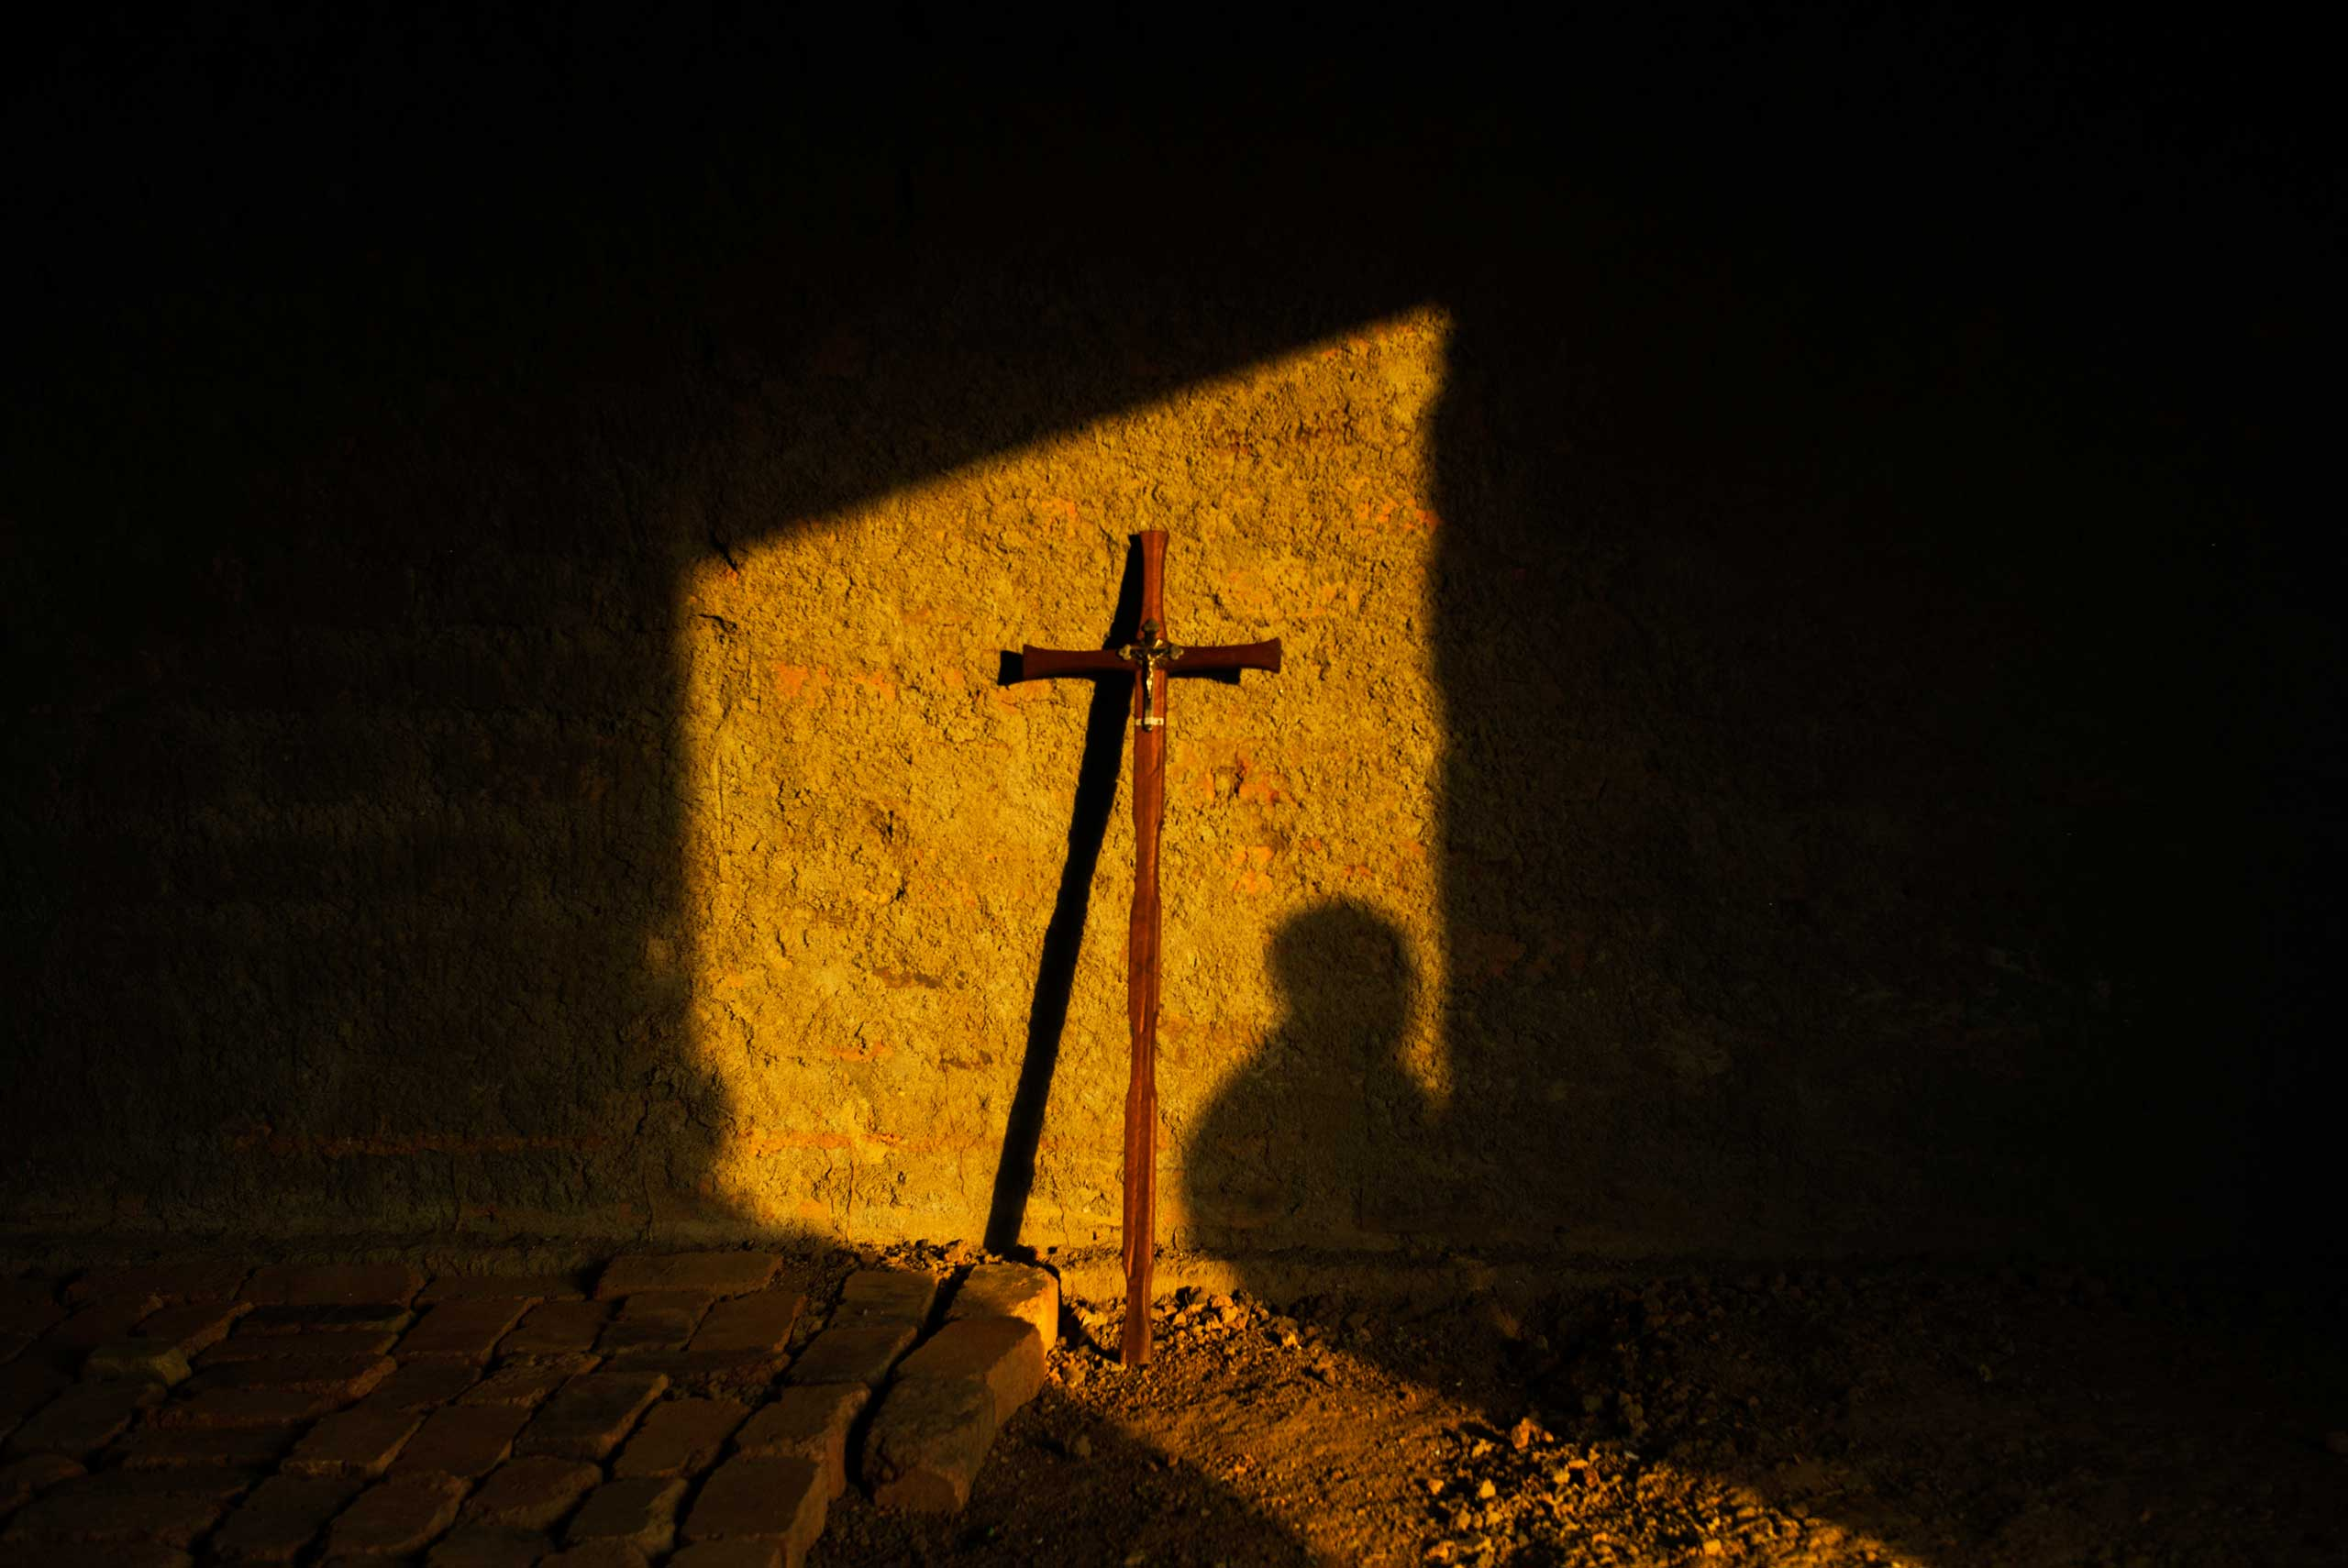 A church in Danga, Central African Republic, minutes before a Sunday mass.